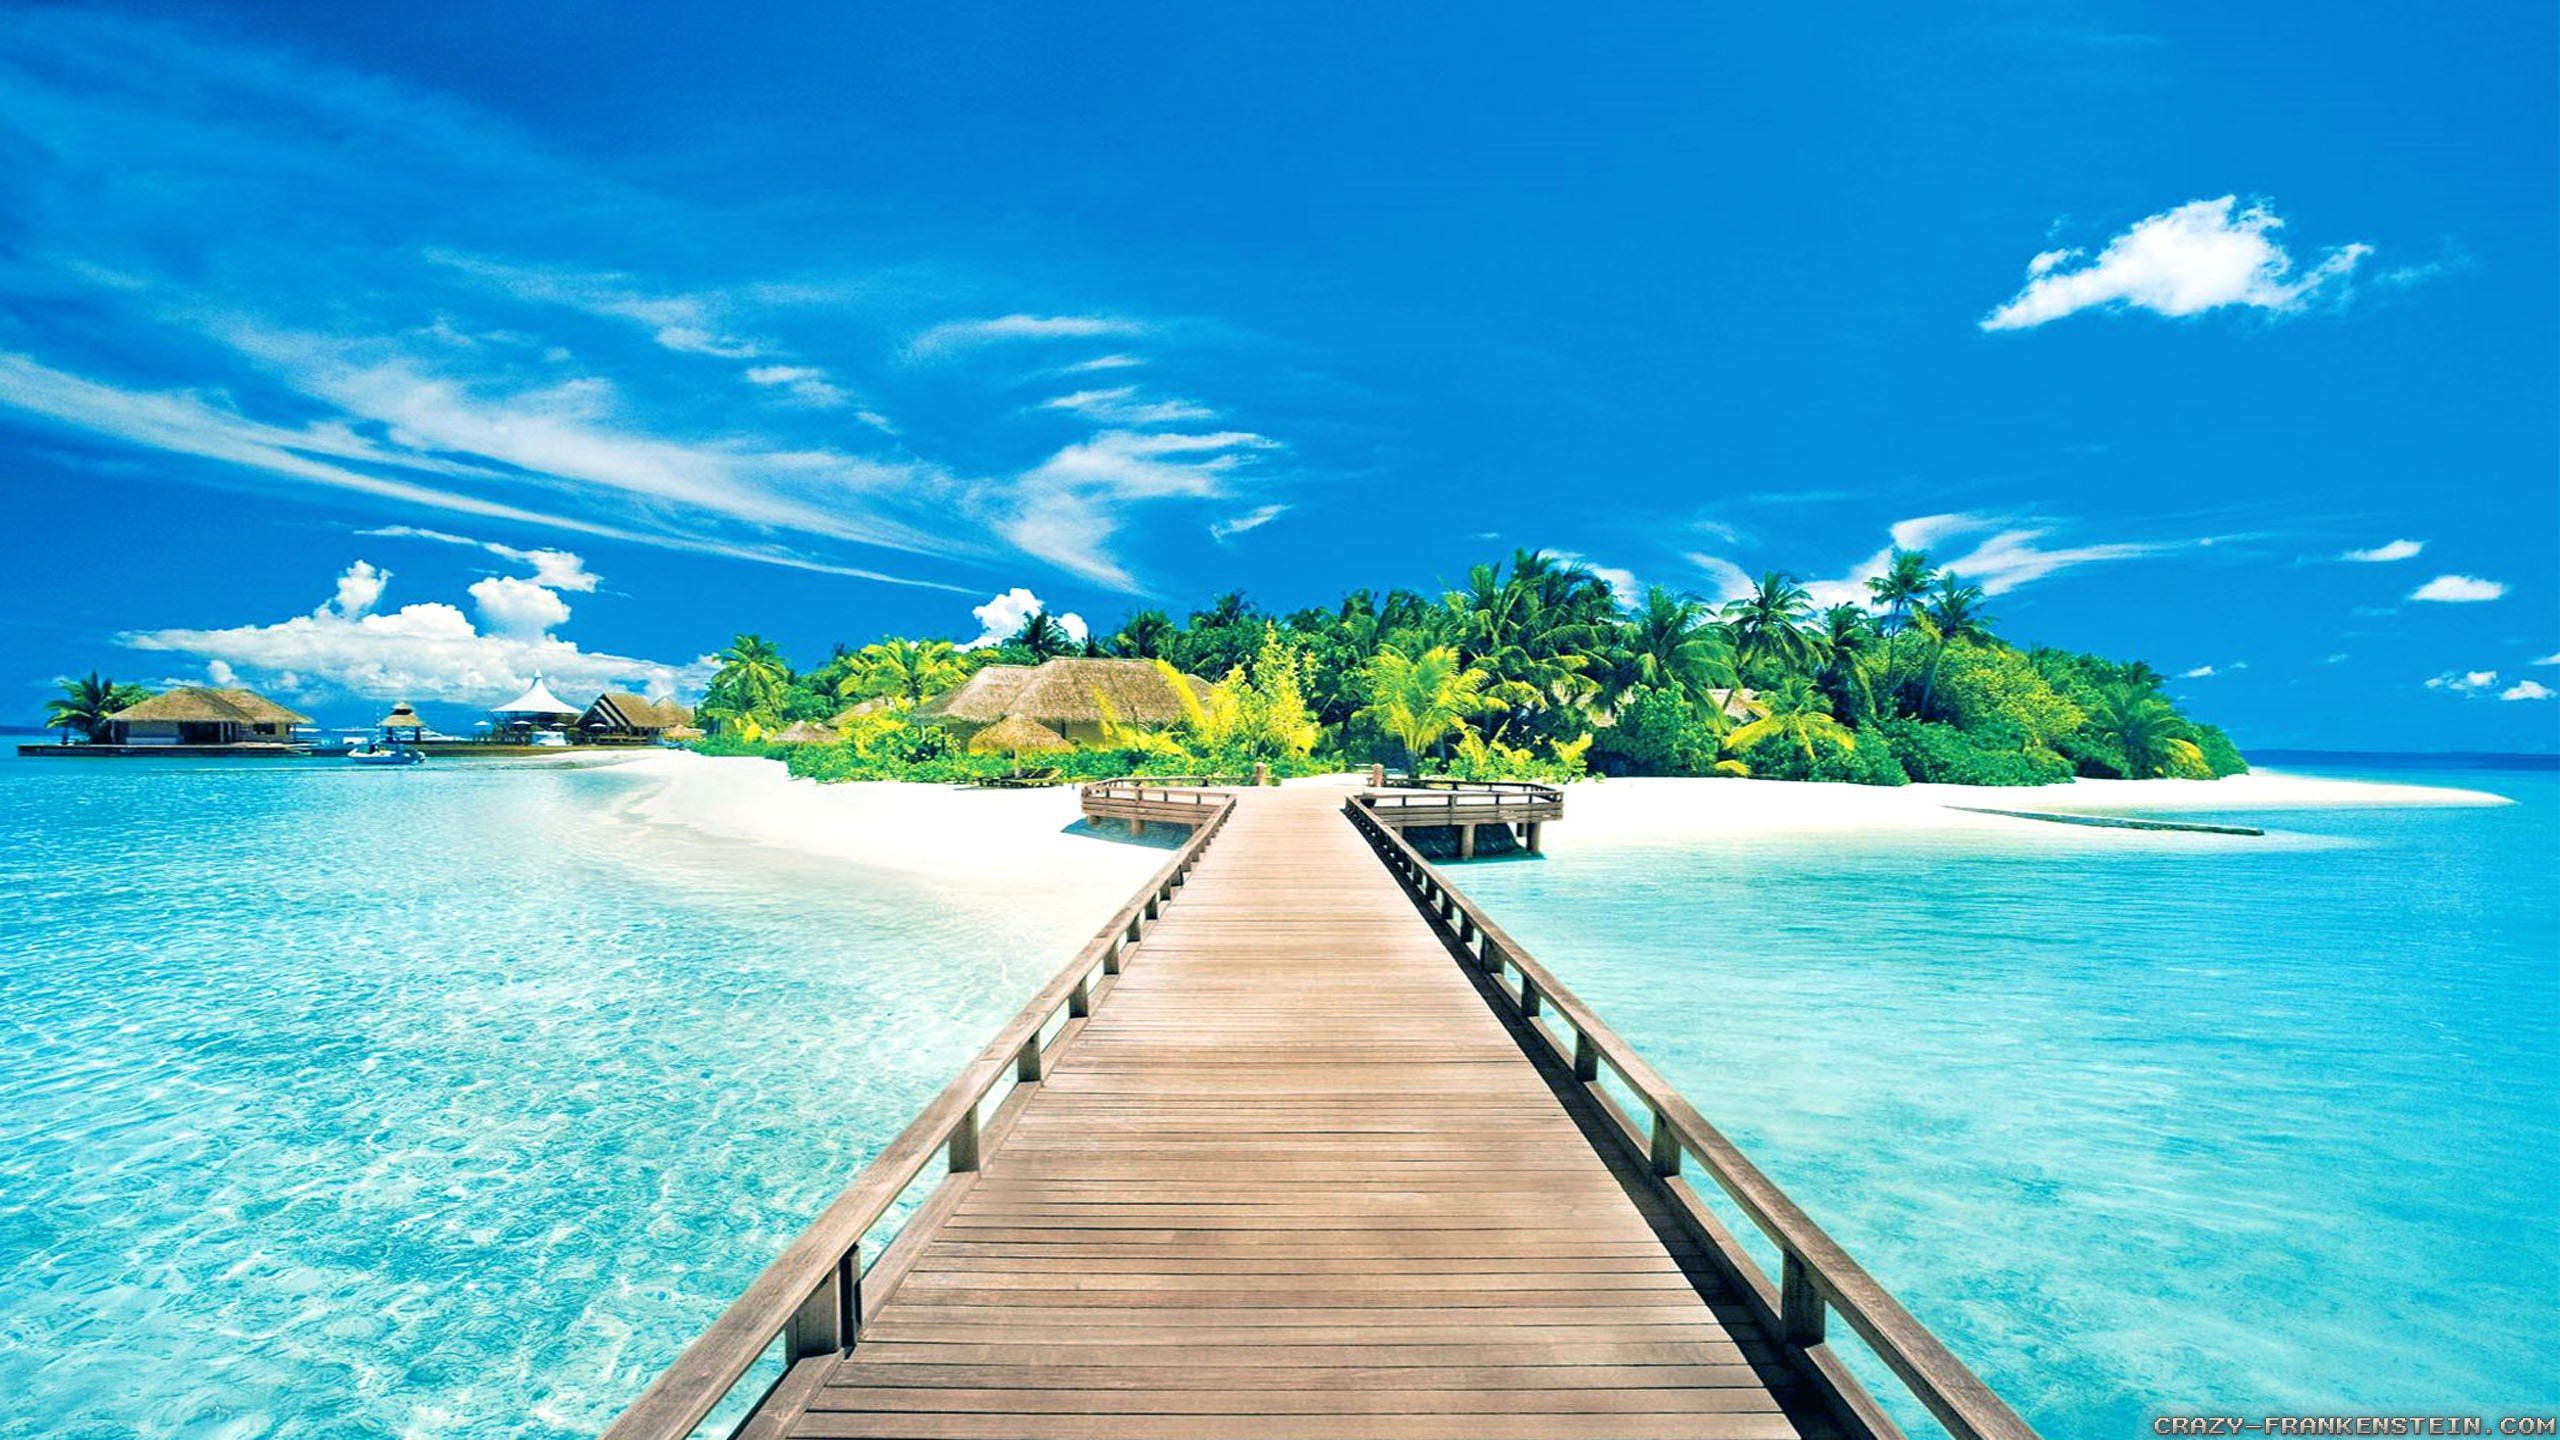 Summer Vacation Wallpapers   Top Summer Vacation Backgrounds 2560x1440